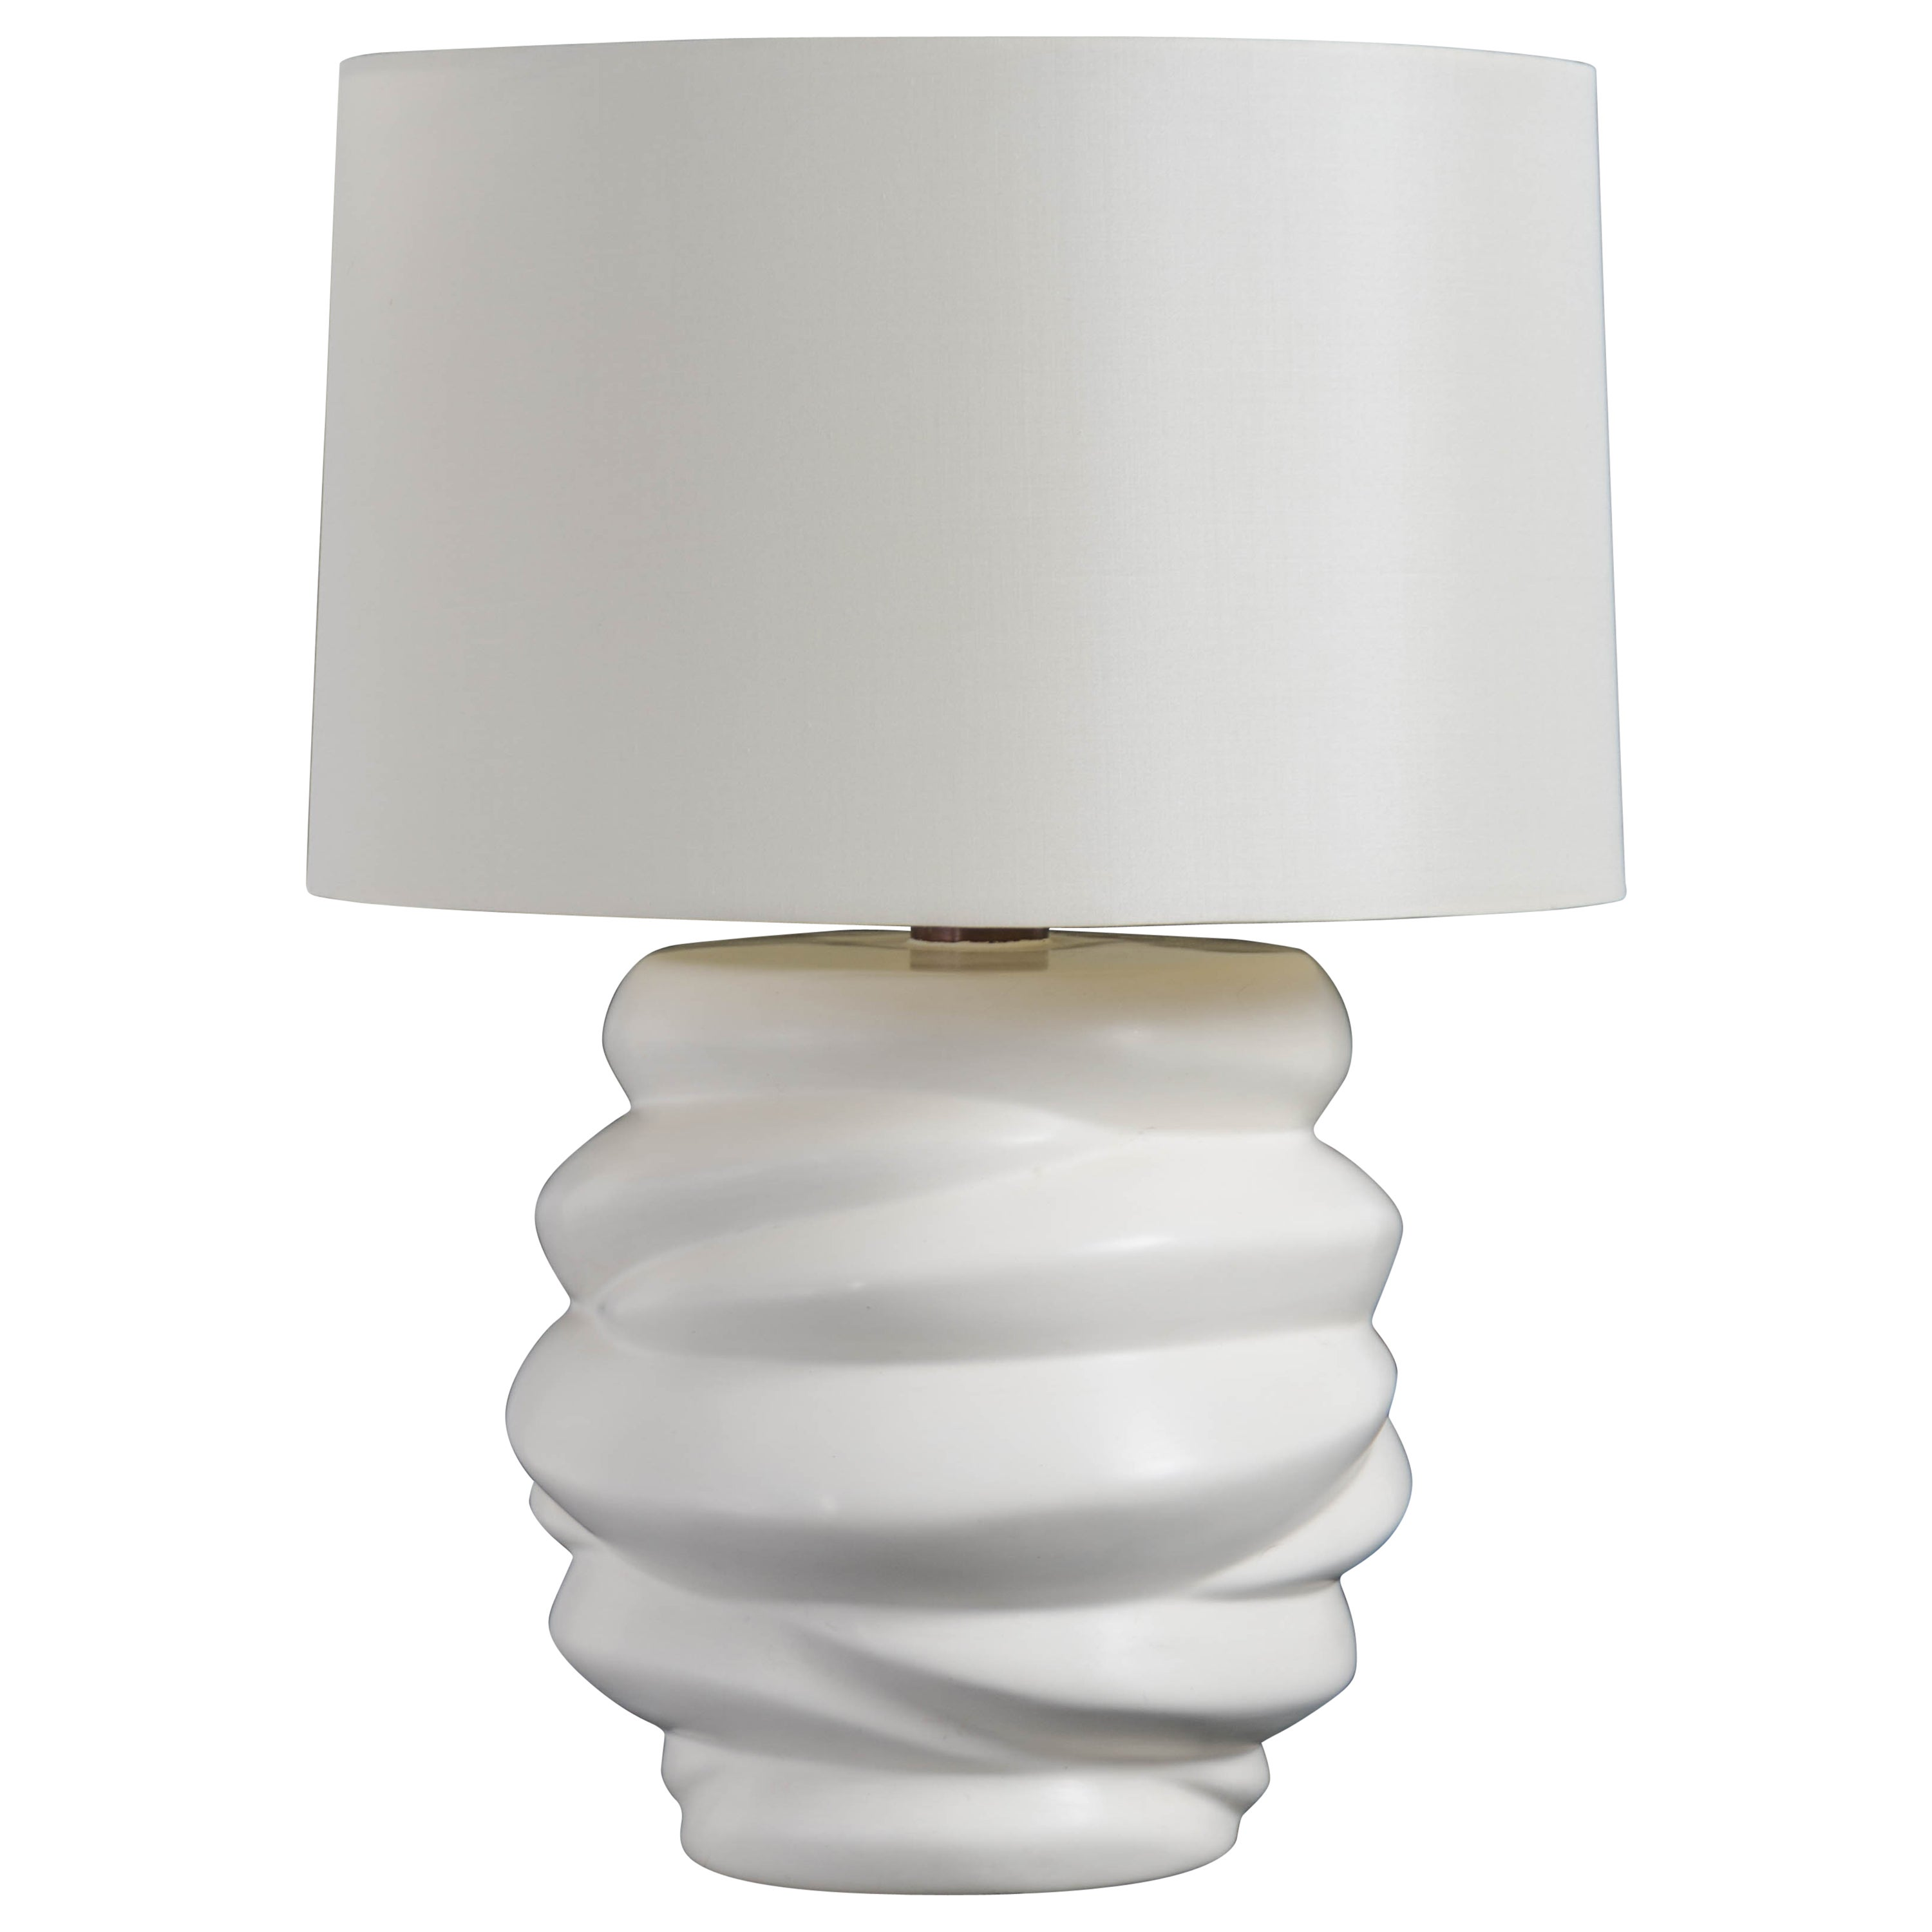 Jie Jarlet Lamp, Cream Lacquer by Robert Kuo, Handmade, Limited Edition